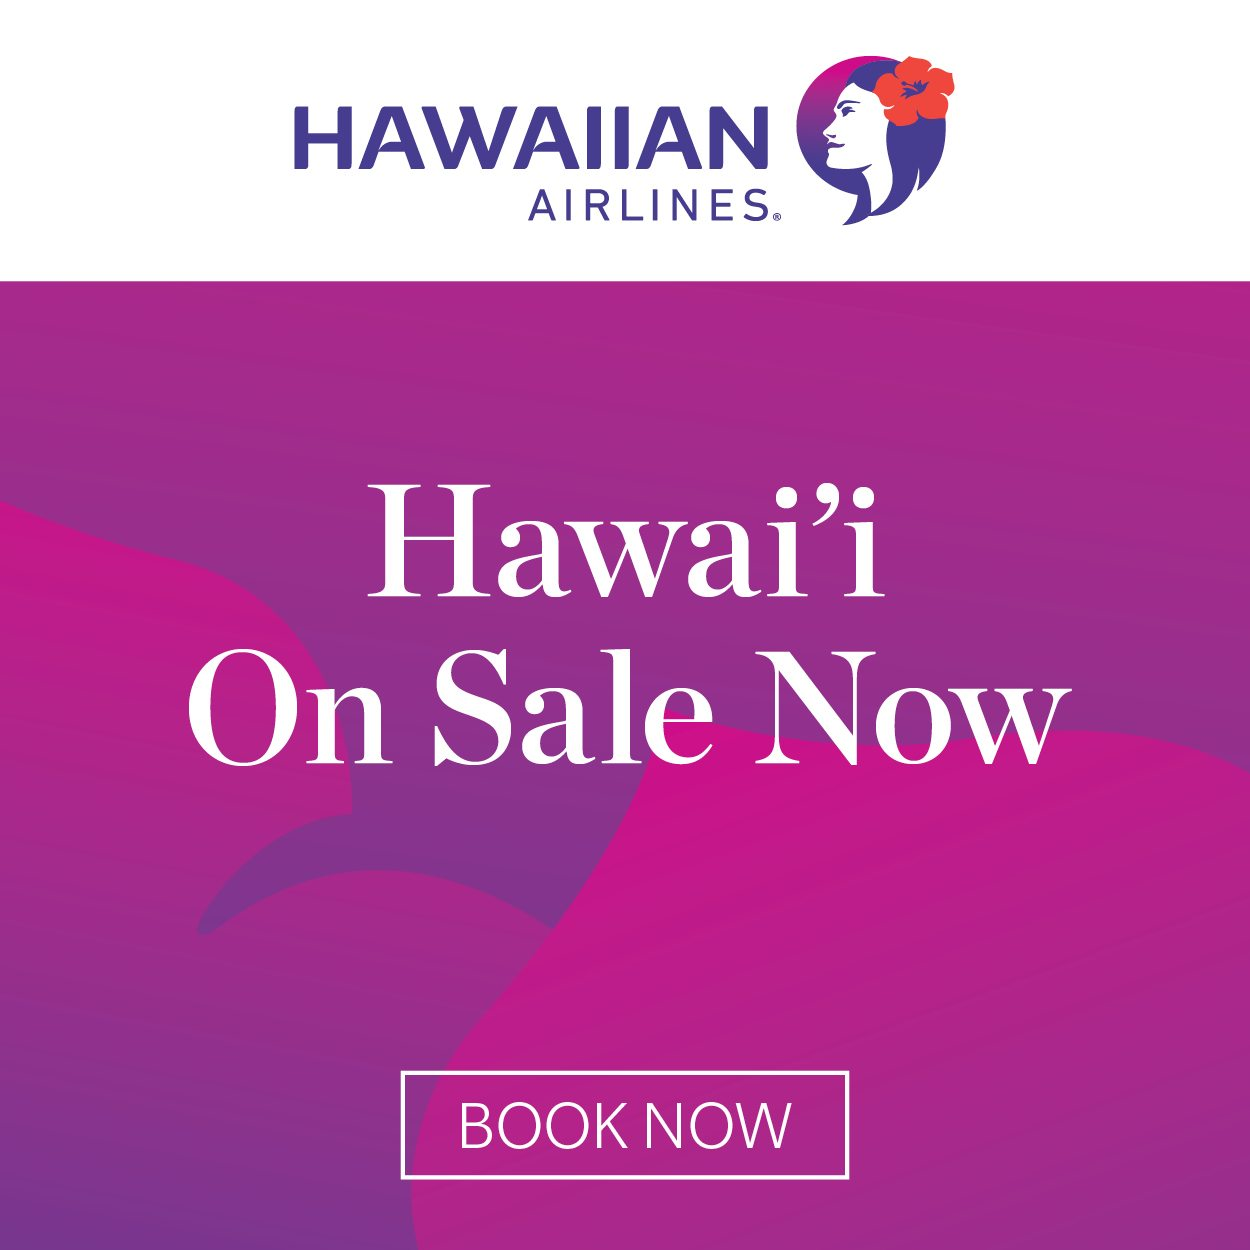 Hawaiian Maxi till 31 Jan 2018